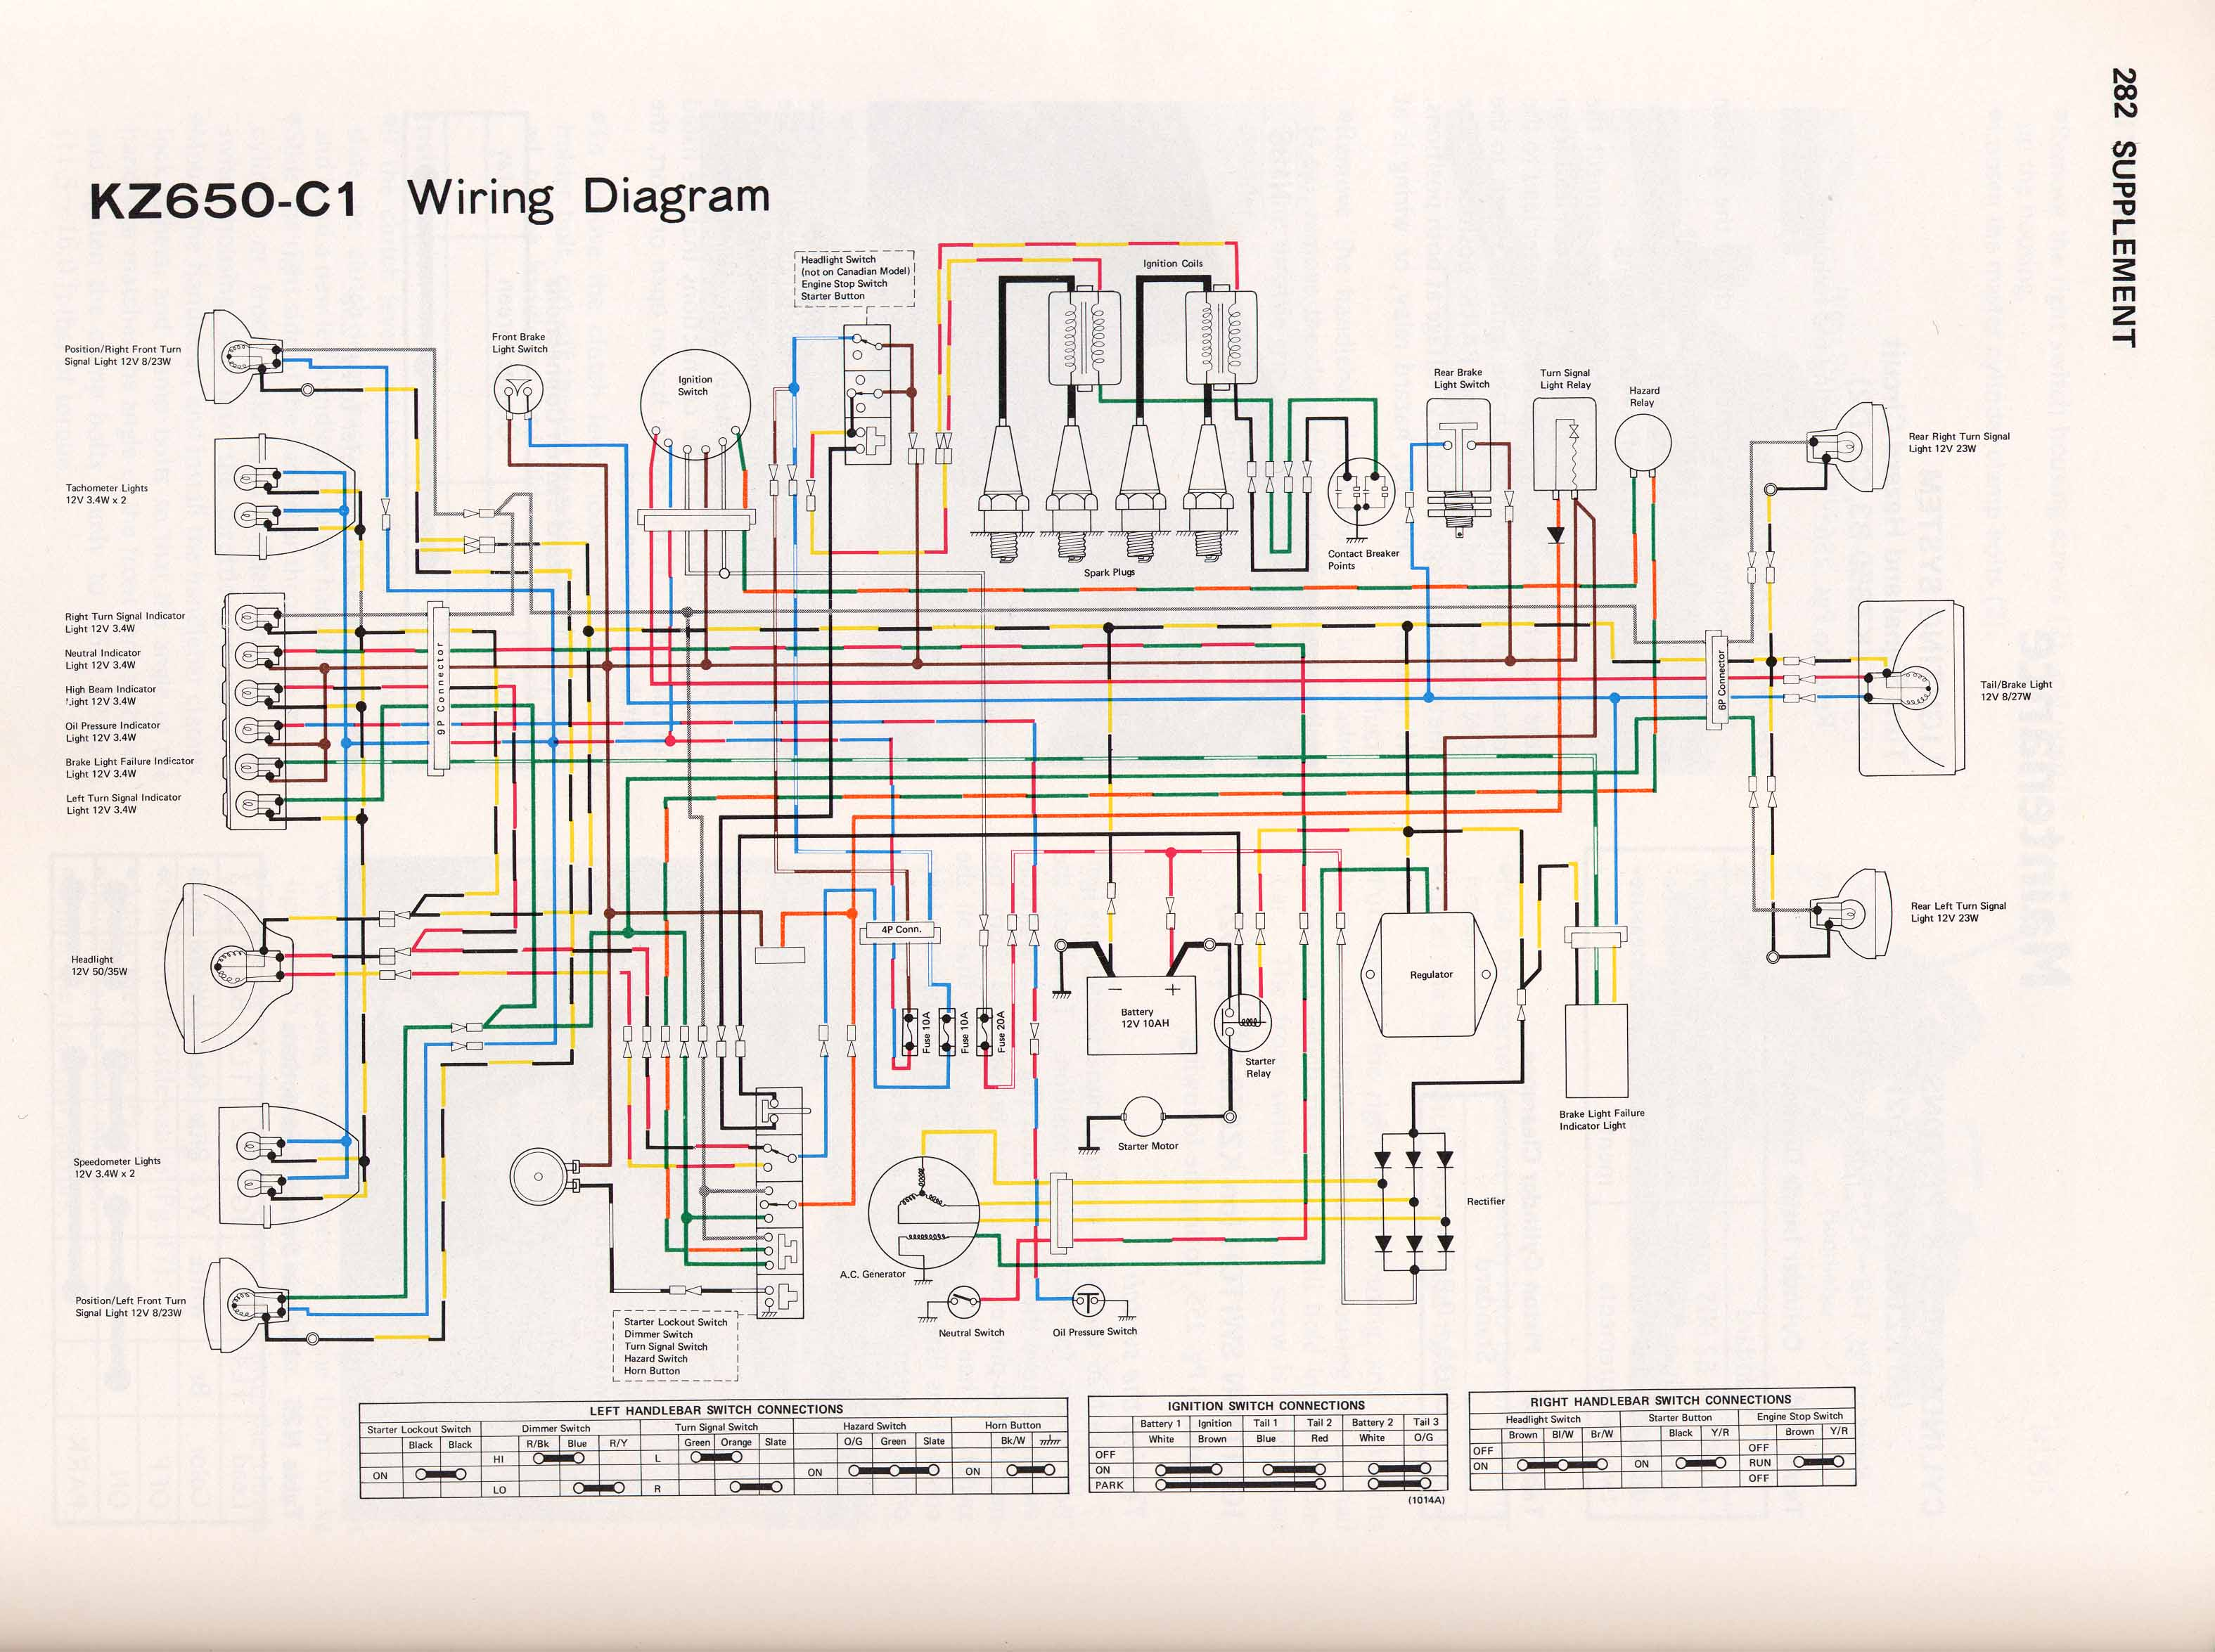 xs1100 wiring diagram wiring diagram xs1100 chopper wiring diagram